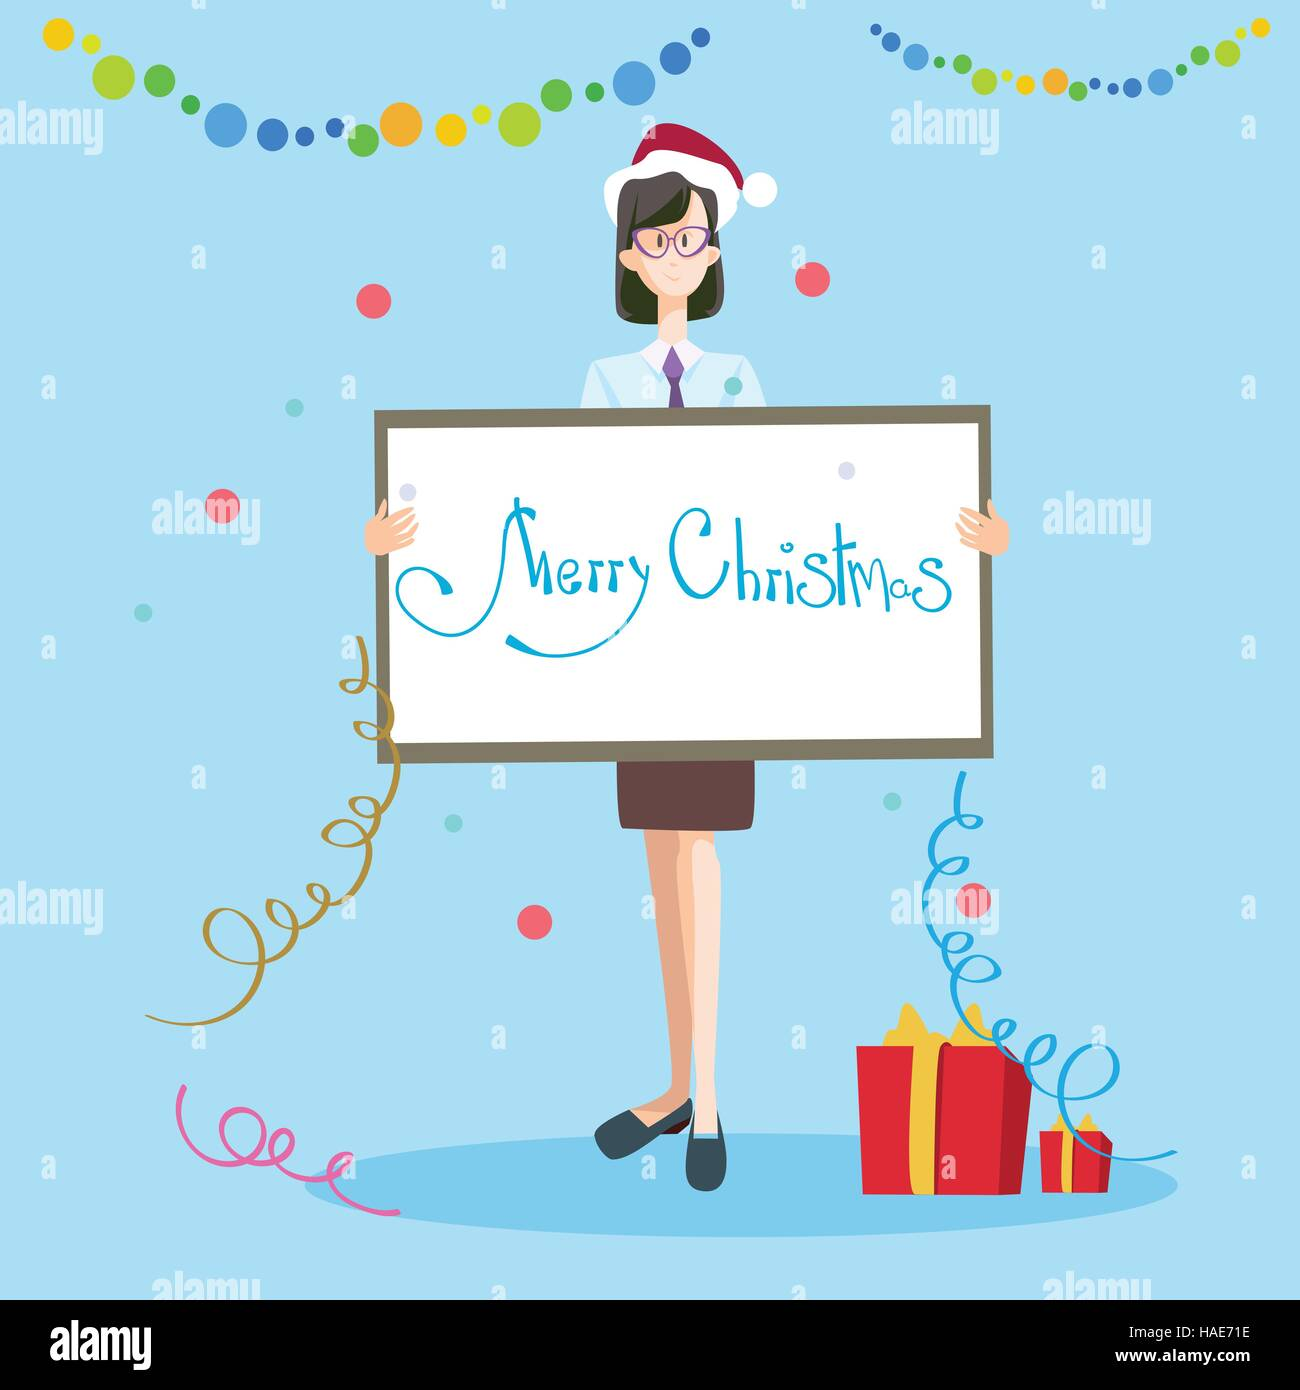 business woman hold banner merry christmas and happy new year celebration stock vector